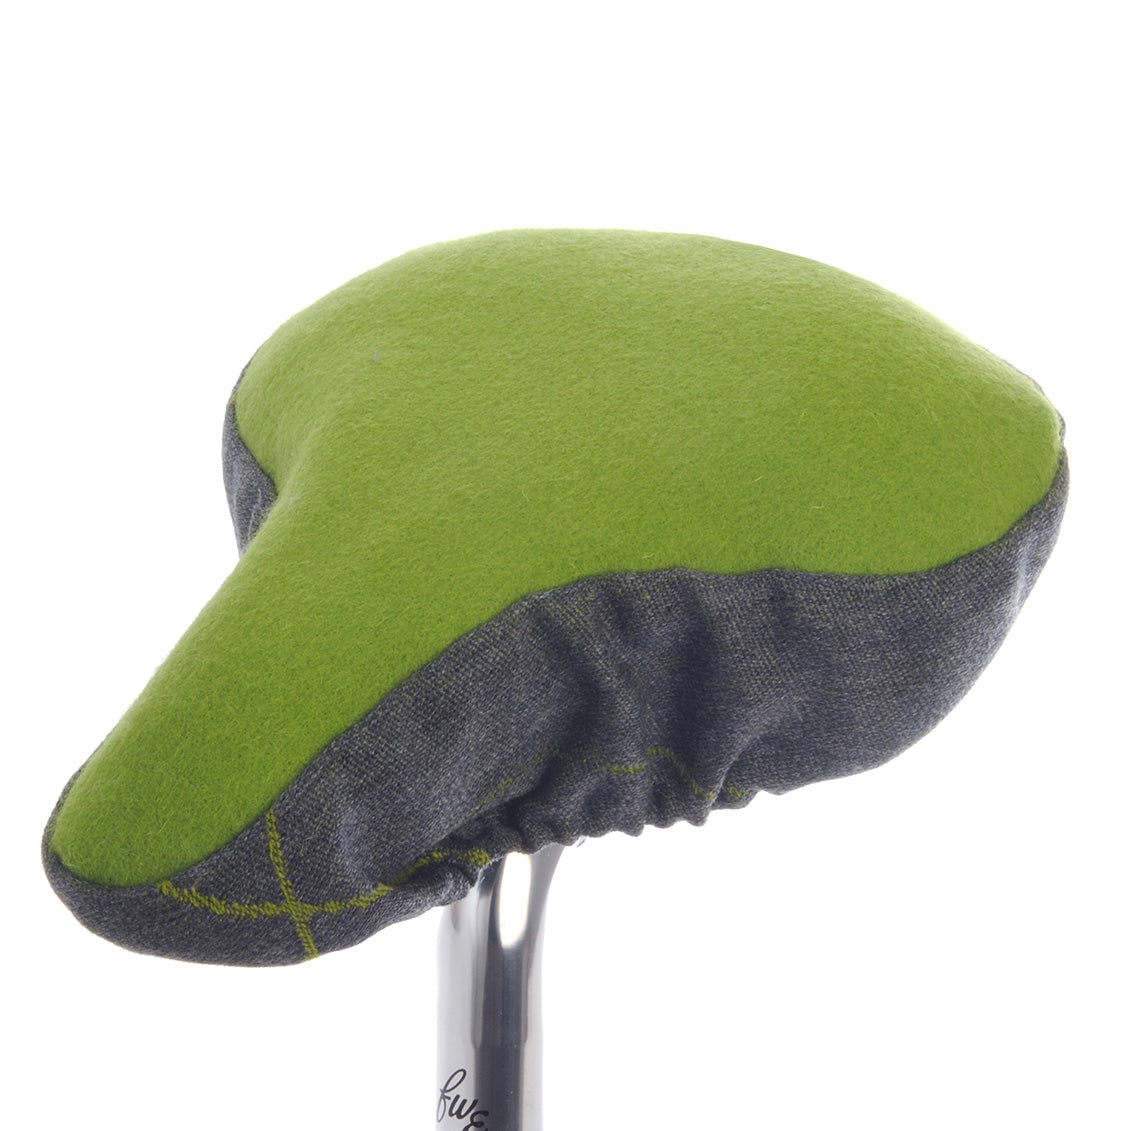 Mossy Bike Saddle Cover - Green